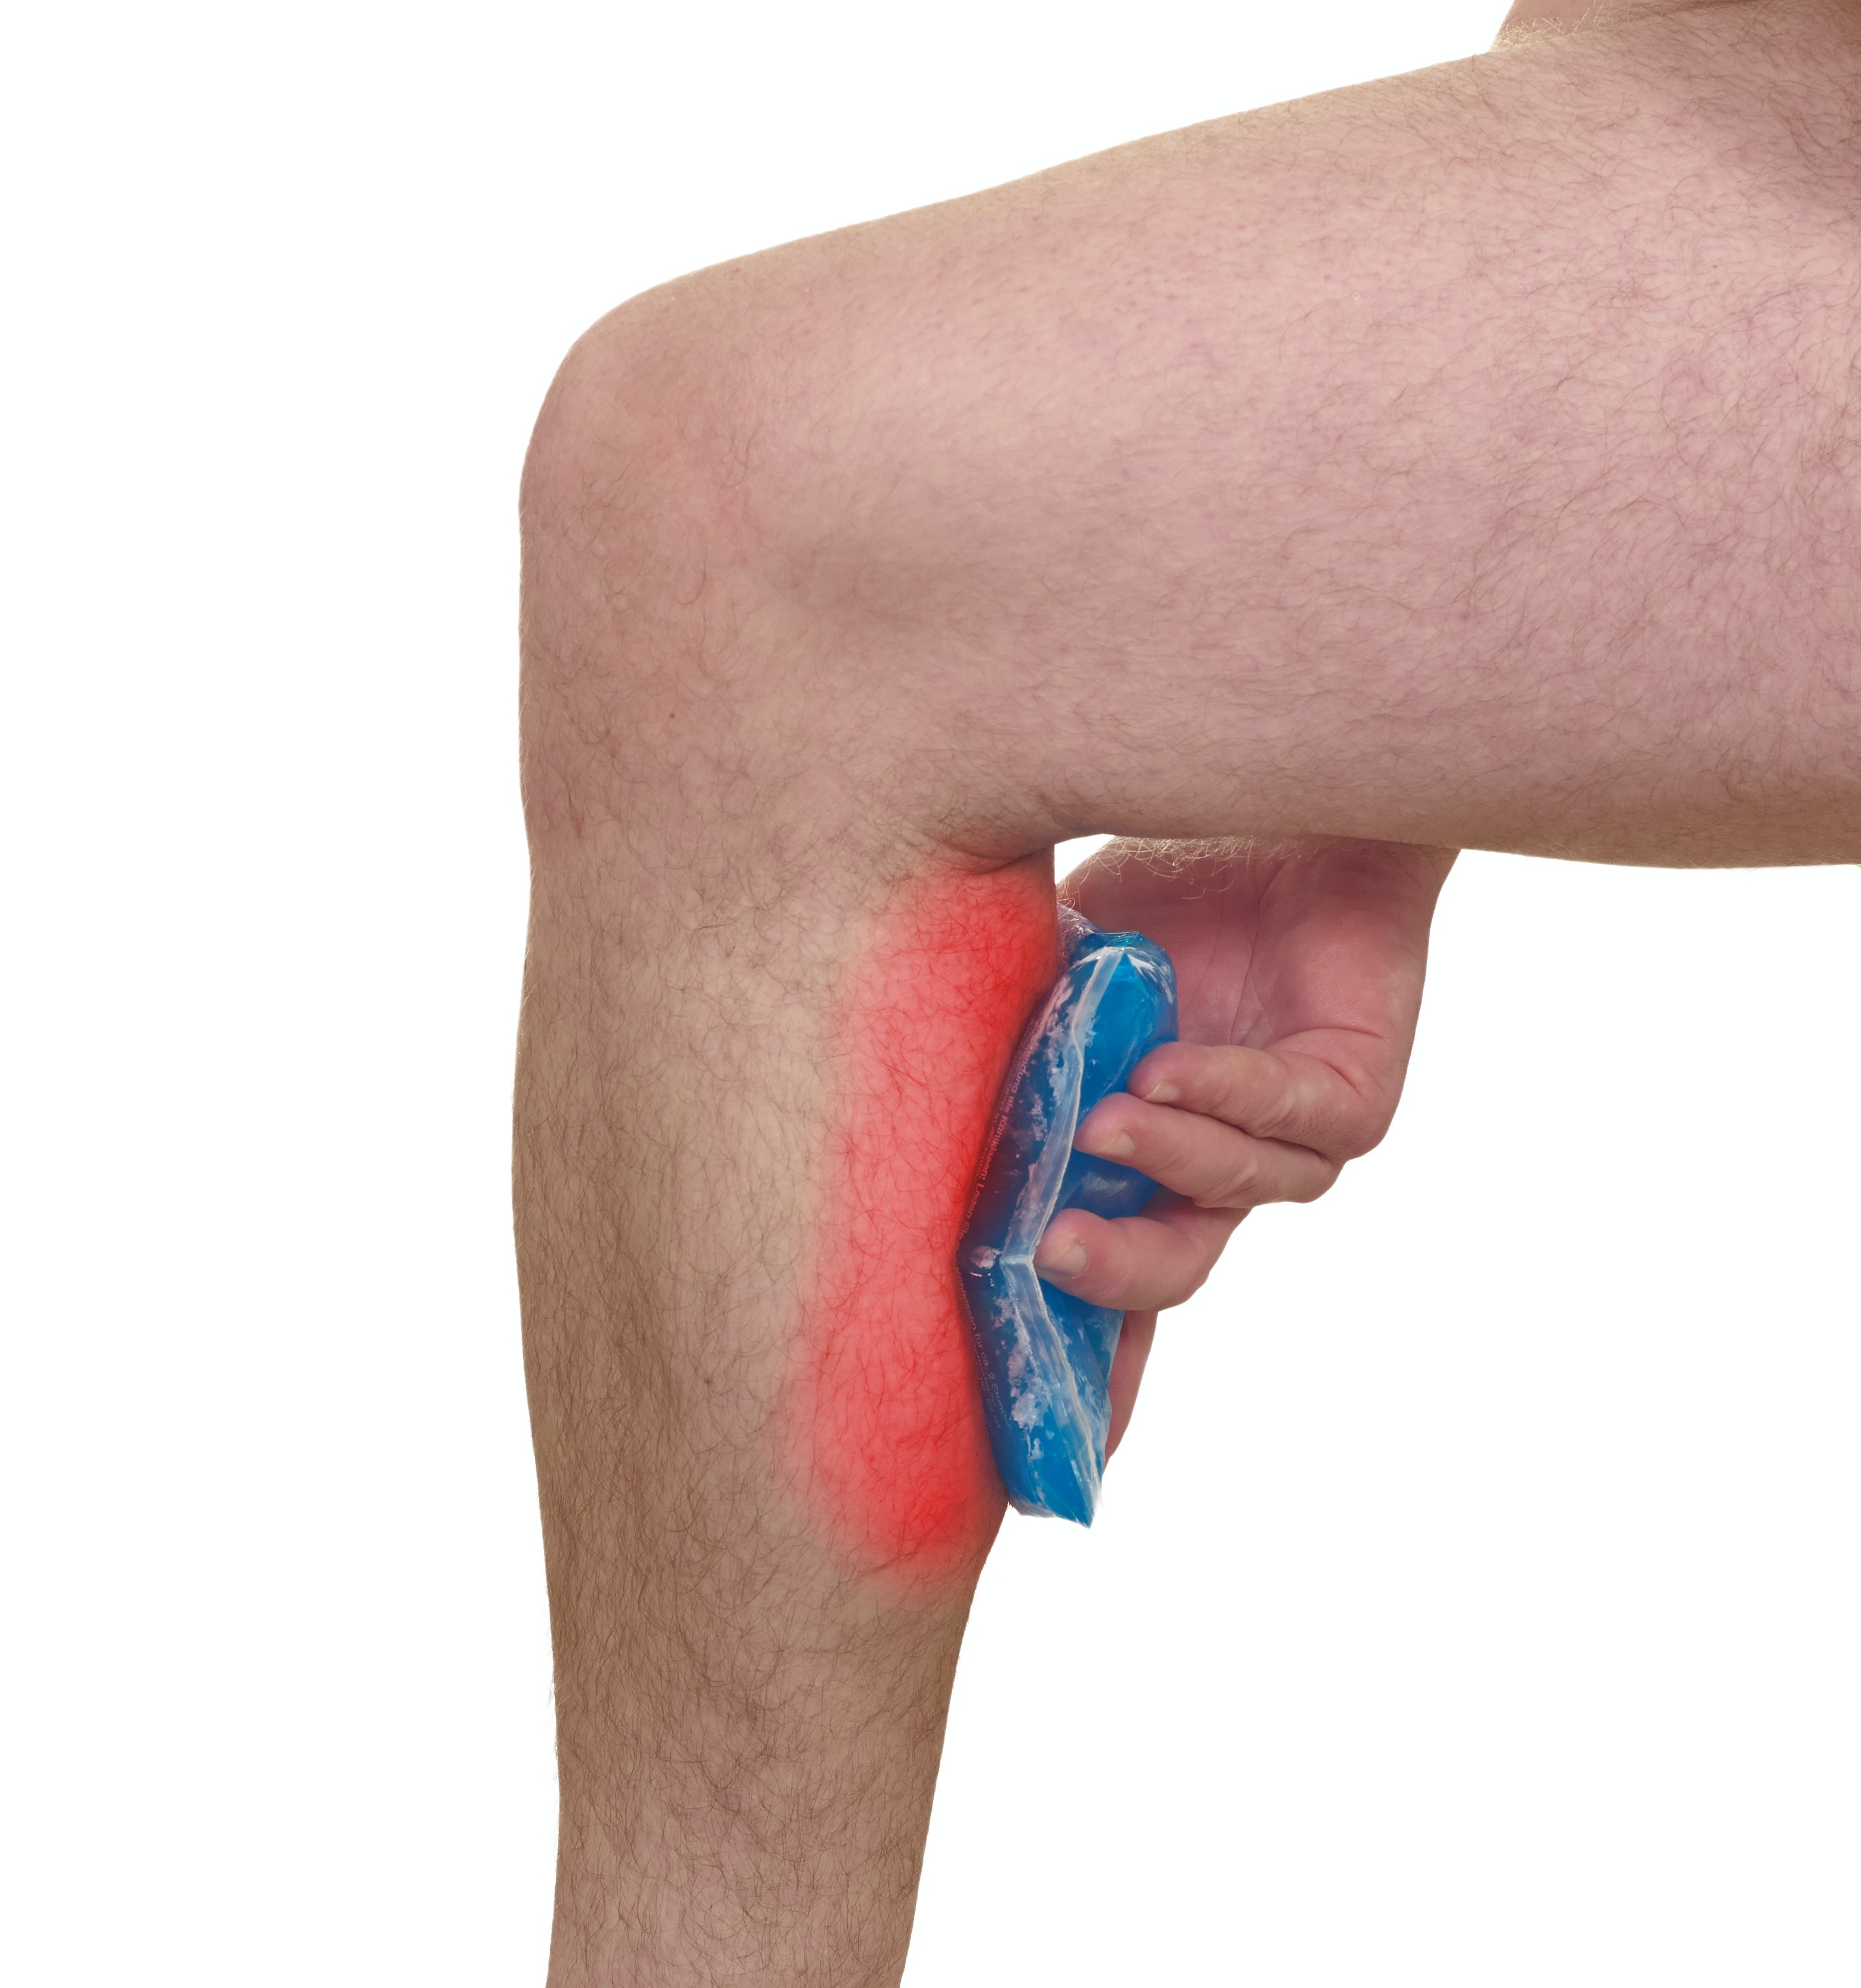 An image depicting a person suffering from swollen calves symptoms